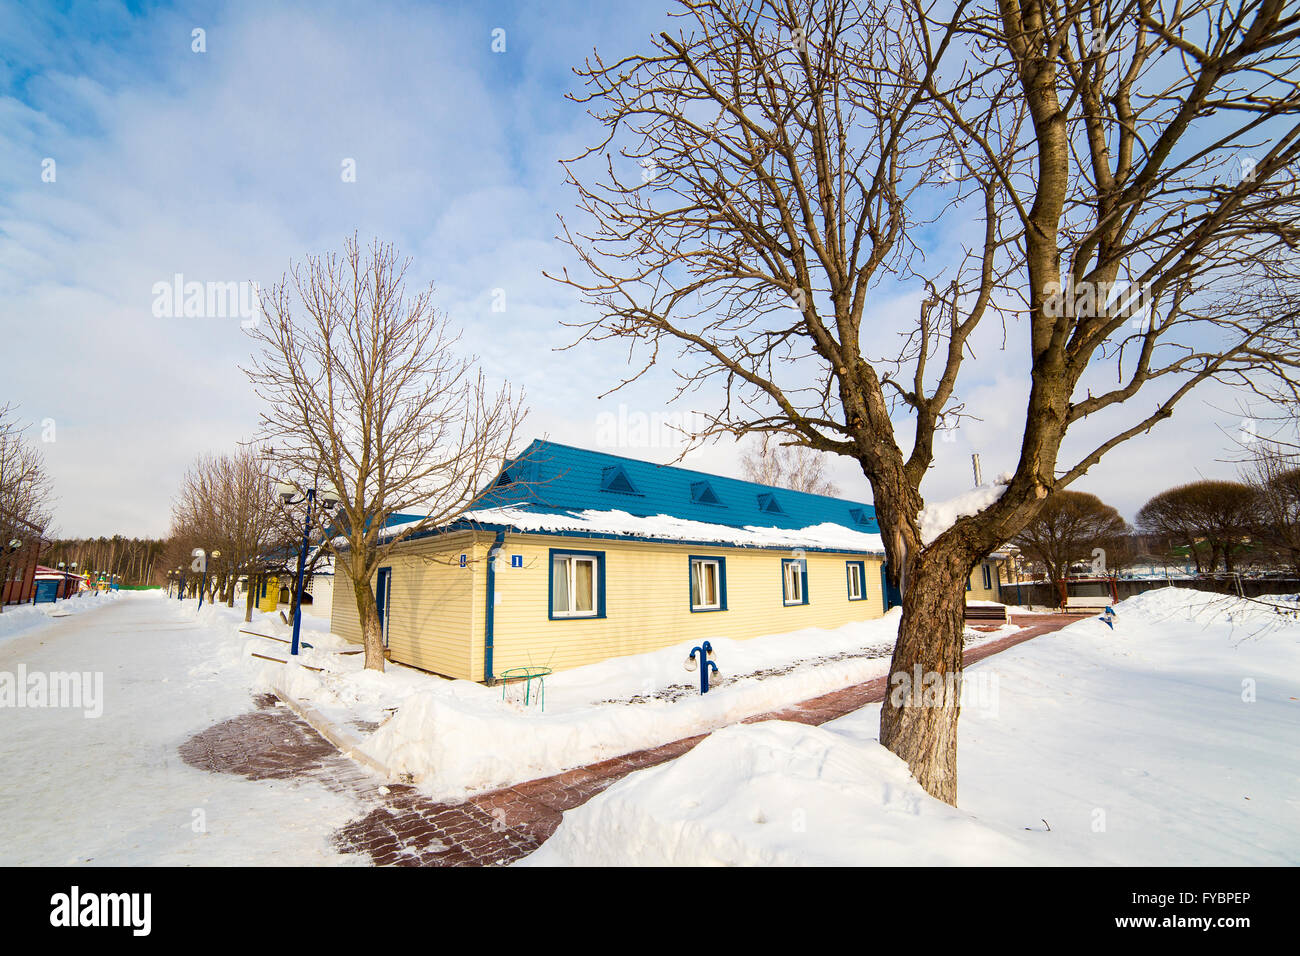 Small Yellow Wooden Cottage In Winter Stock Photo Royalty